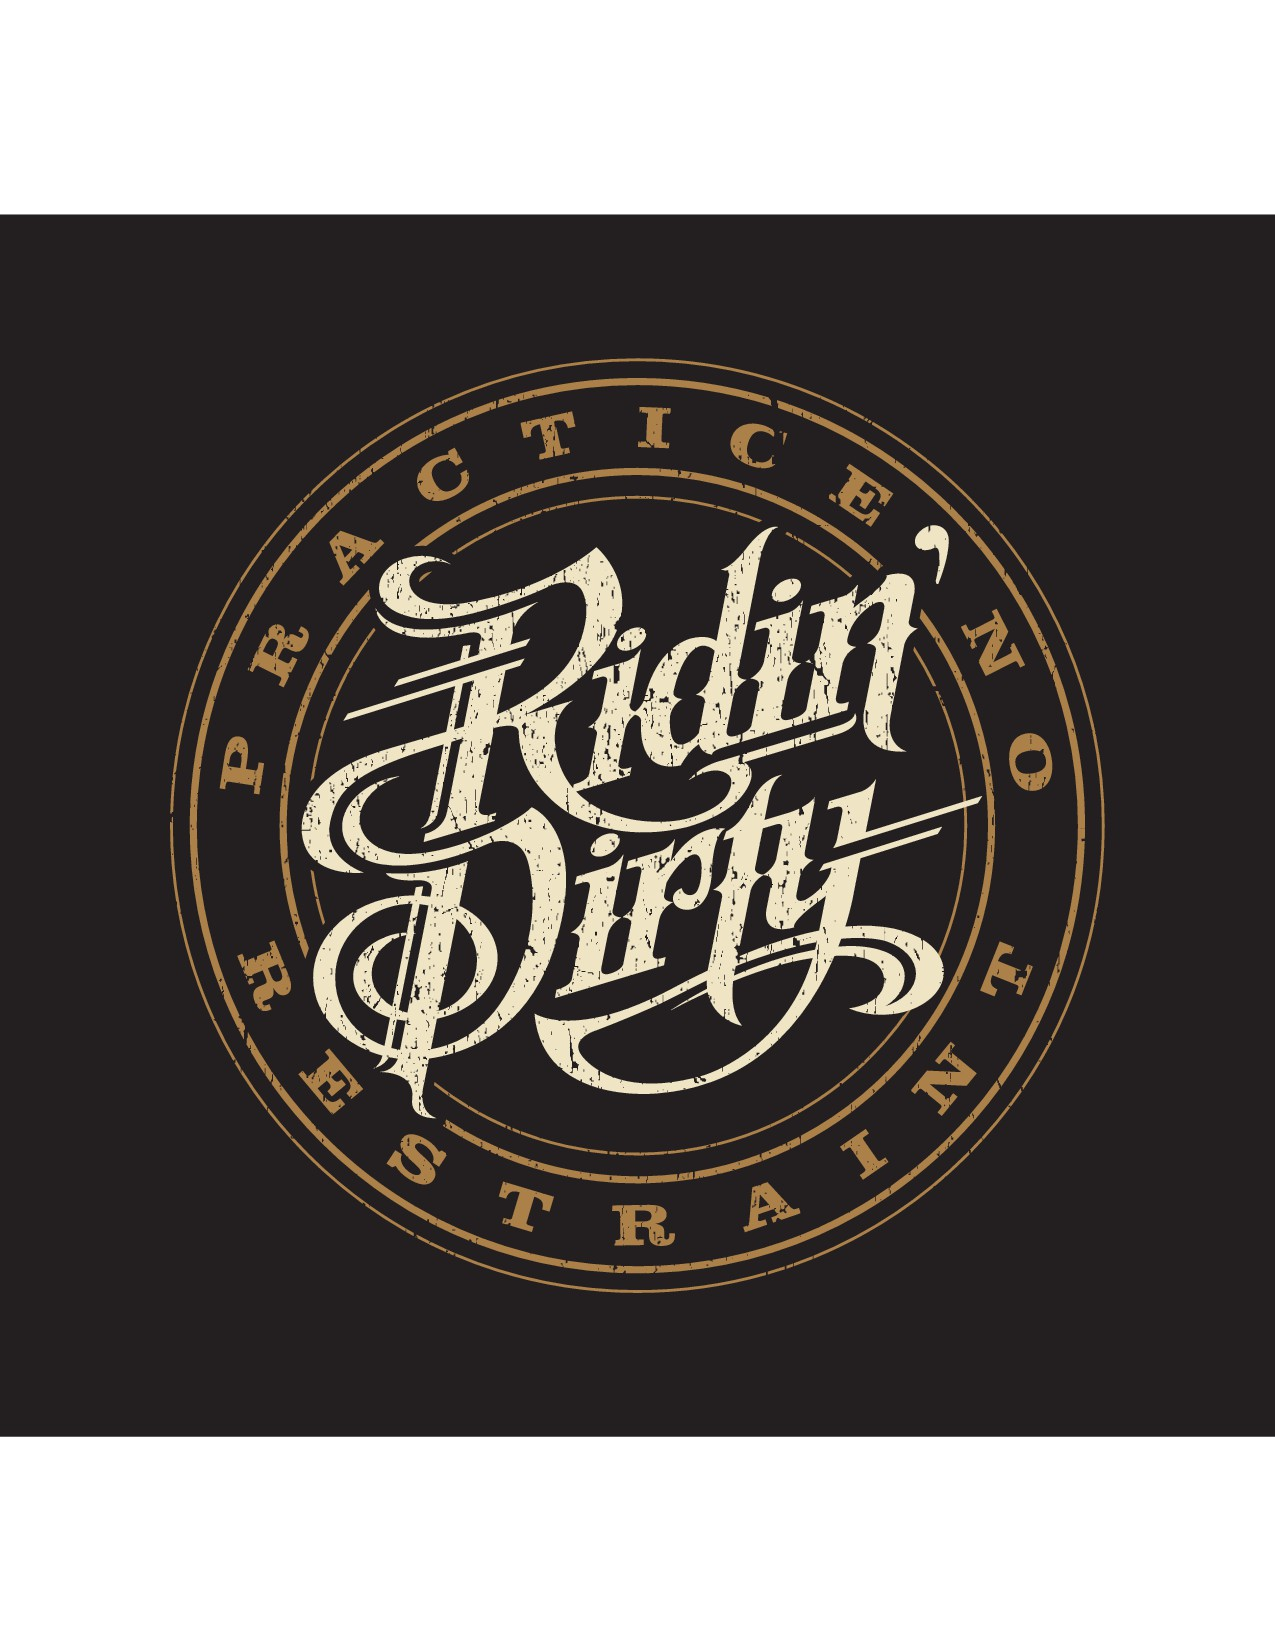 Ridin' Dirty brand T's-- Car/ Motorcycle/ ATV lifestyle + Cowboy/ Rodeo/ Western lifestyle